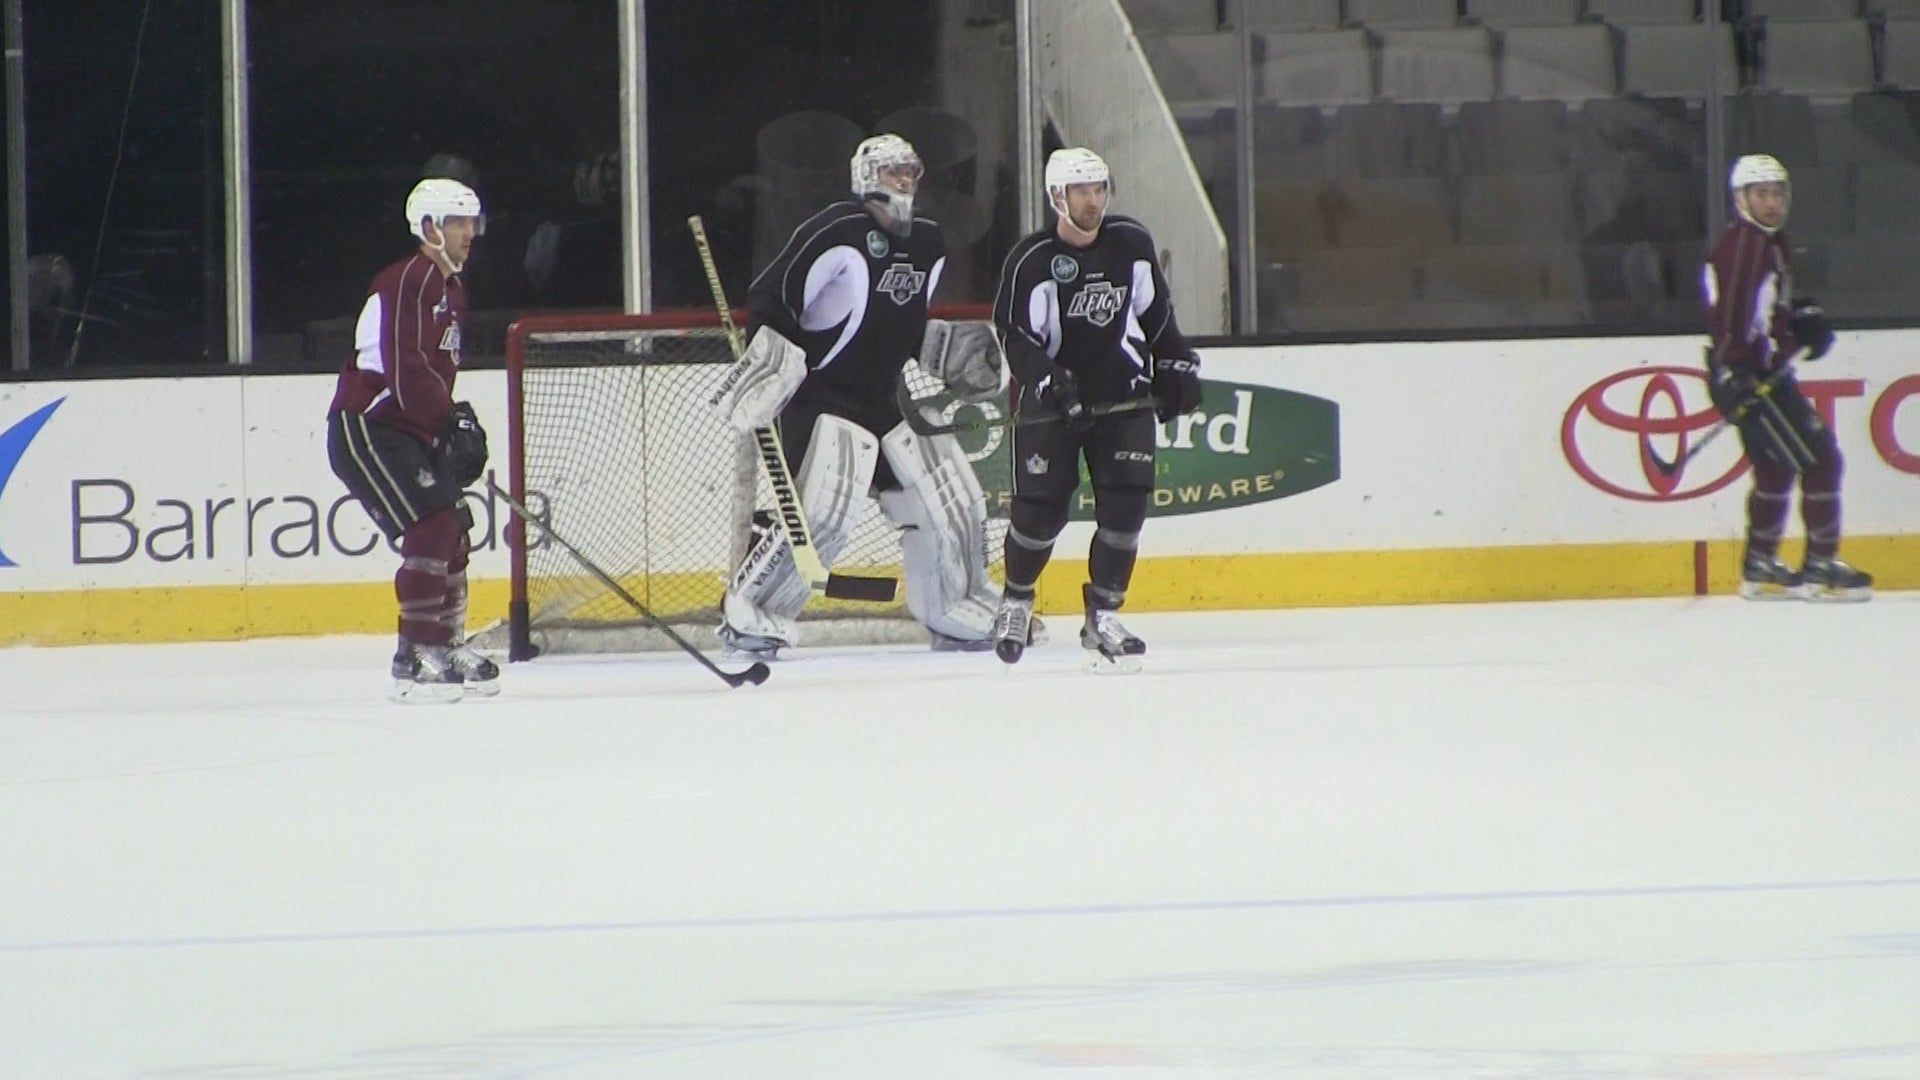 Reign Update - Ontario Battles for First in San Jose Tomorrow